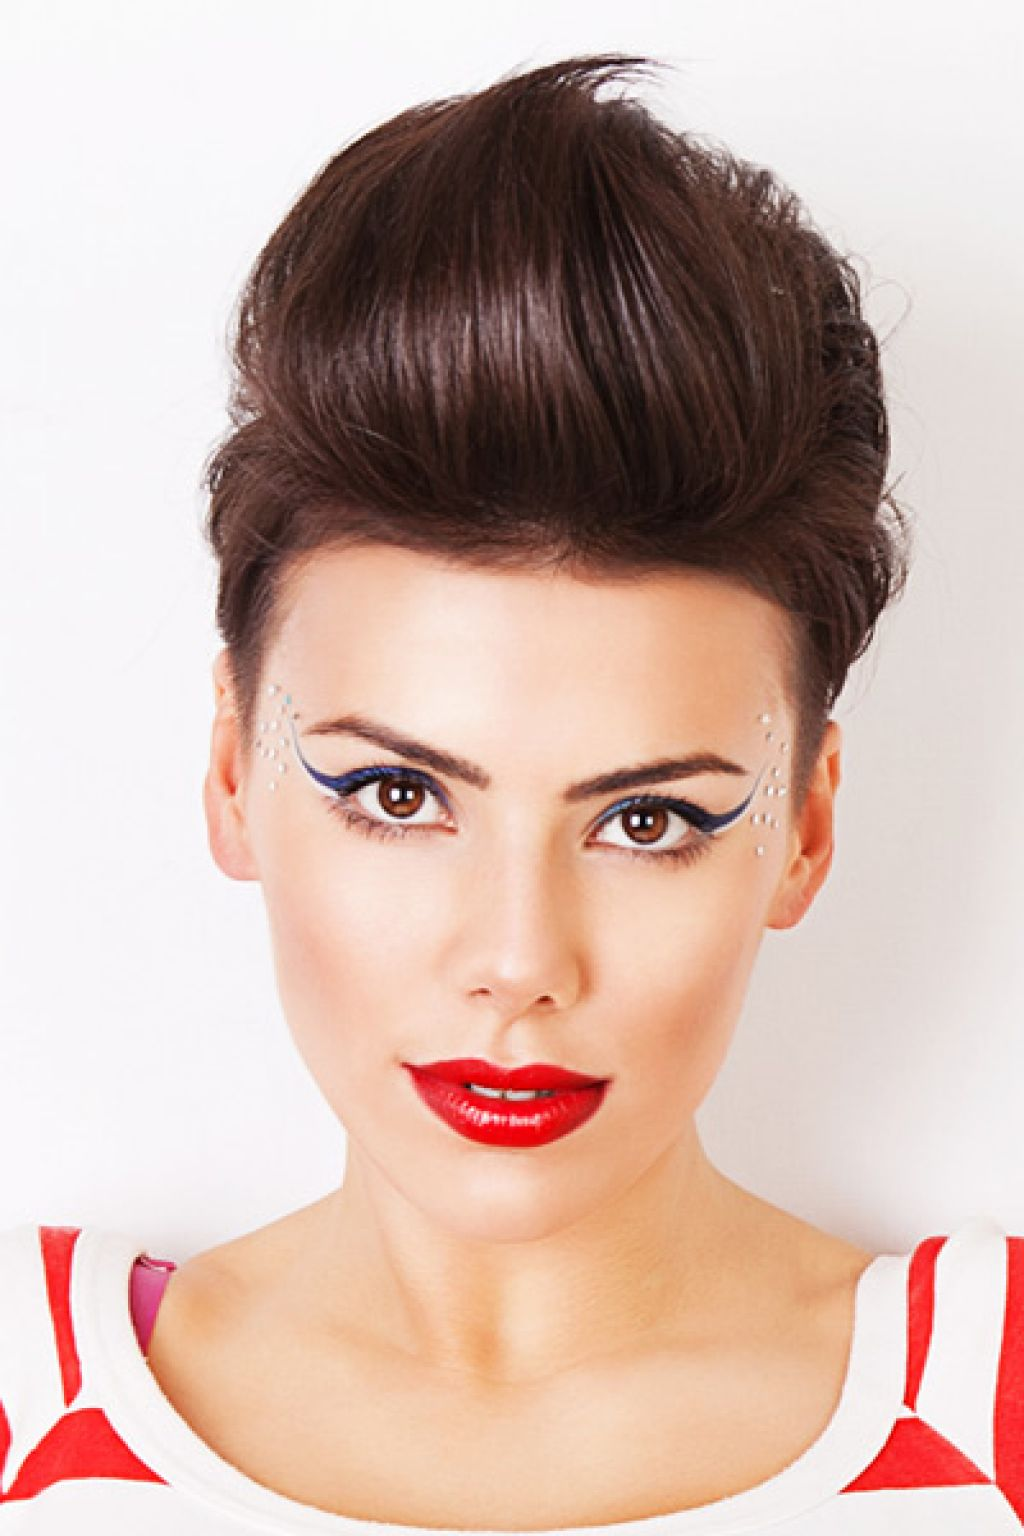 hair-style-trend: Daring Women Quiff Hairstyles To Make a